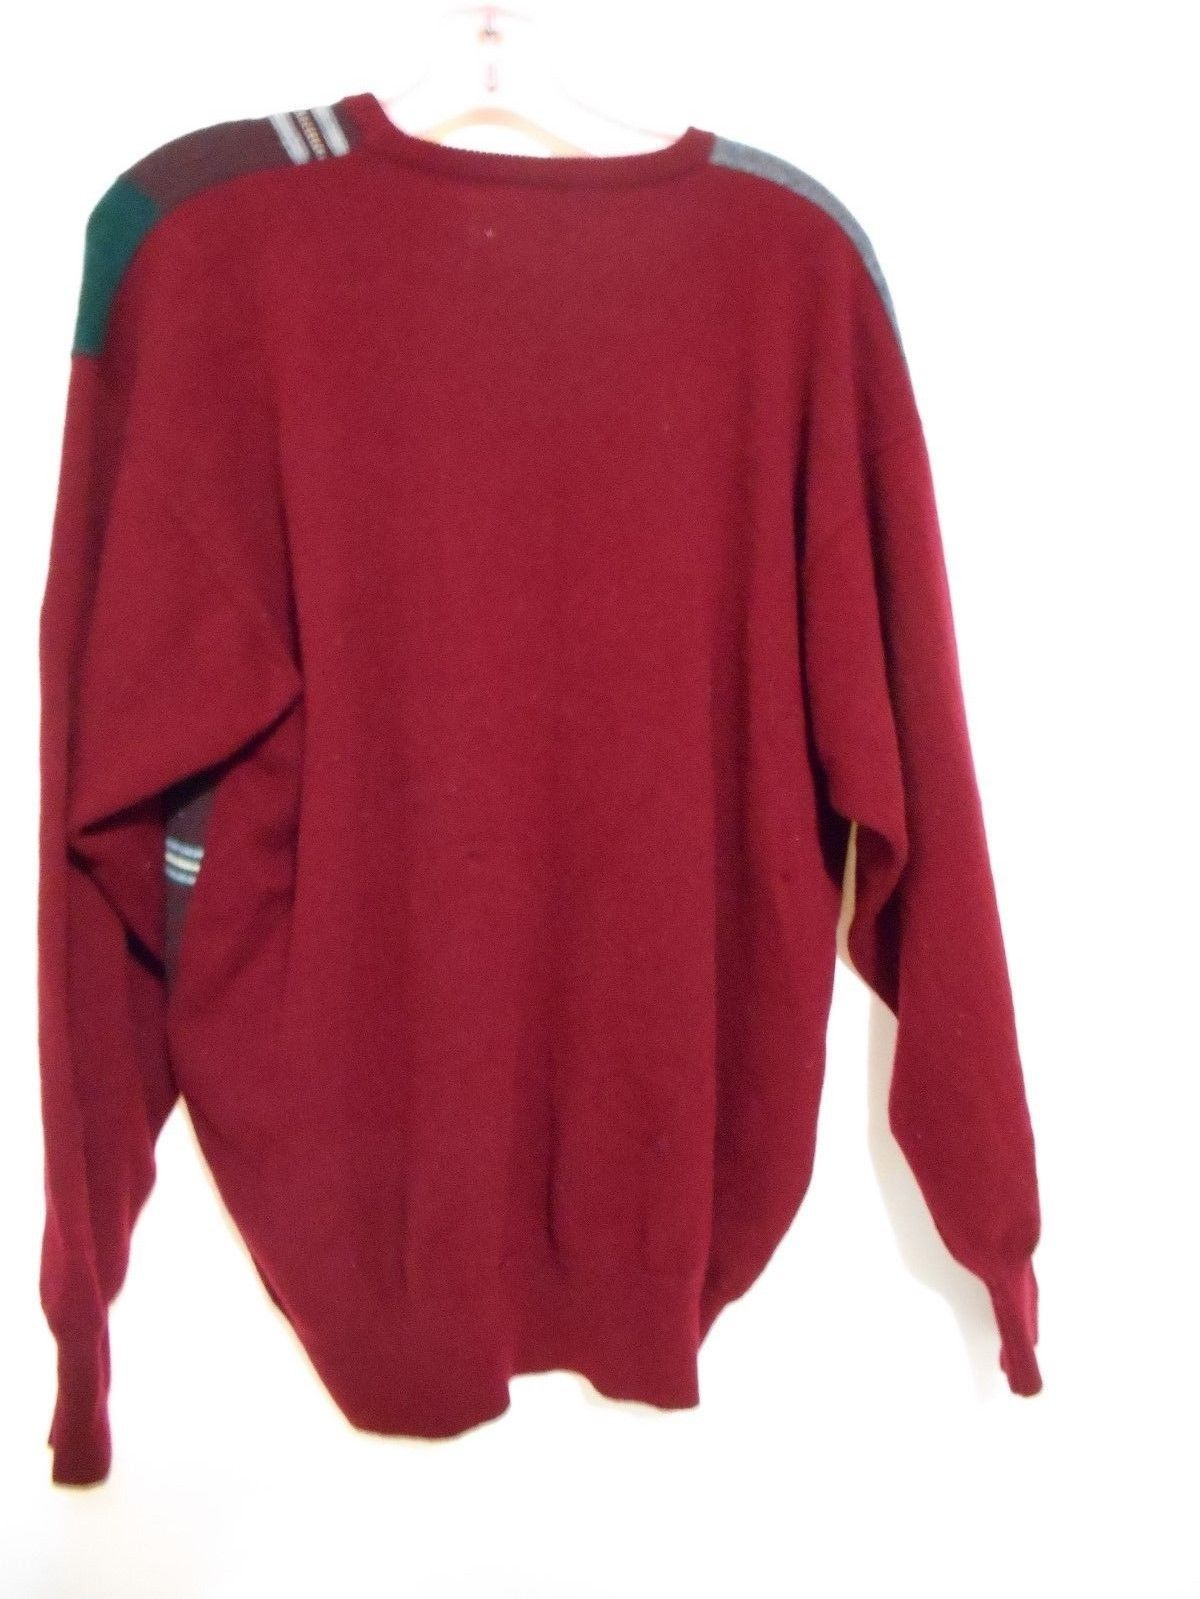 Pringle Sports Red & Gray Wool  Hipster Sweater Size M  Made in Scotland